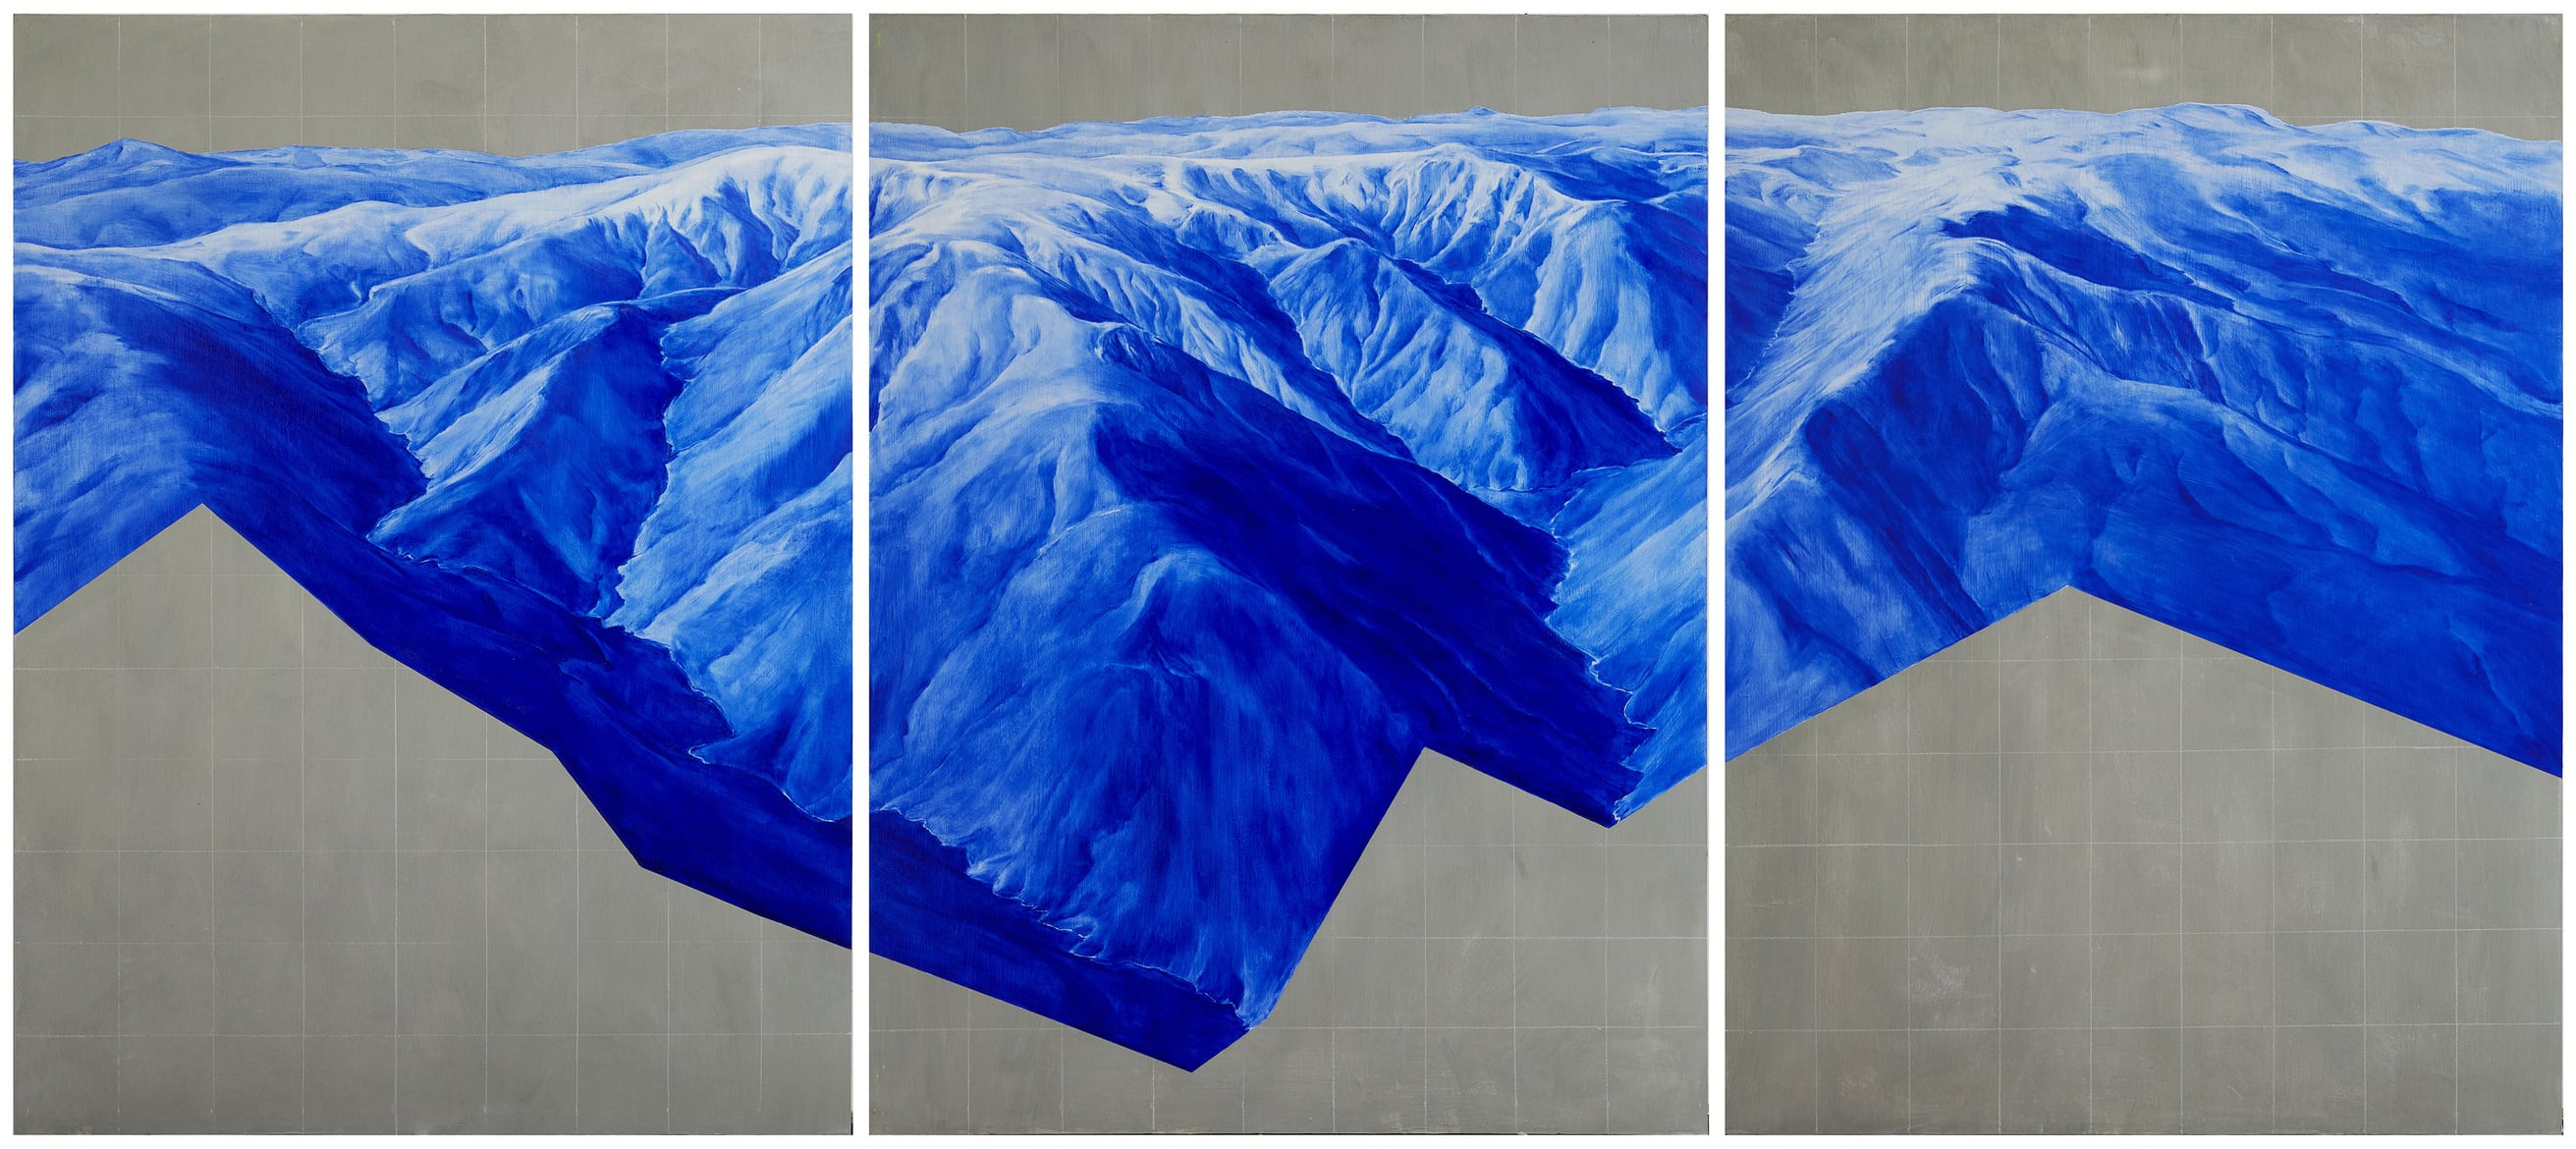 Piers Greville, 'Locality Rails, Observer Effect', 2019, oil concrete and acrylic on board, triptych, 270 x 120 cm overall